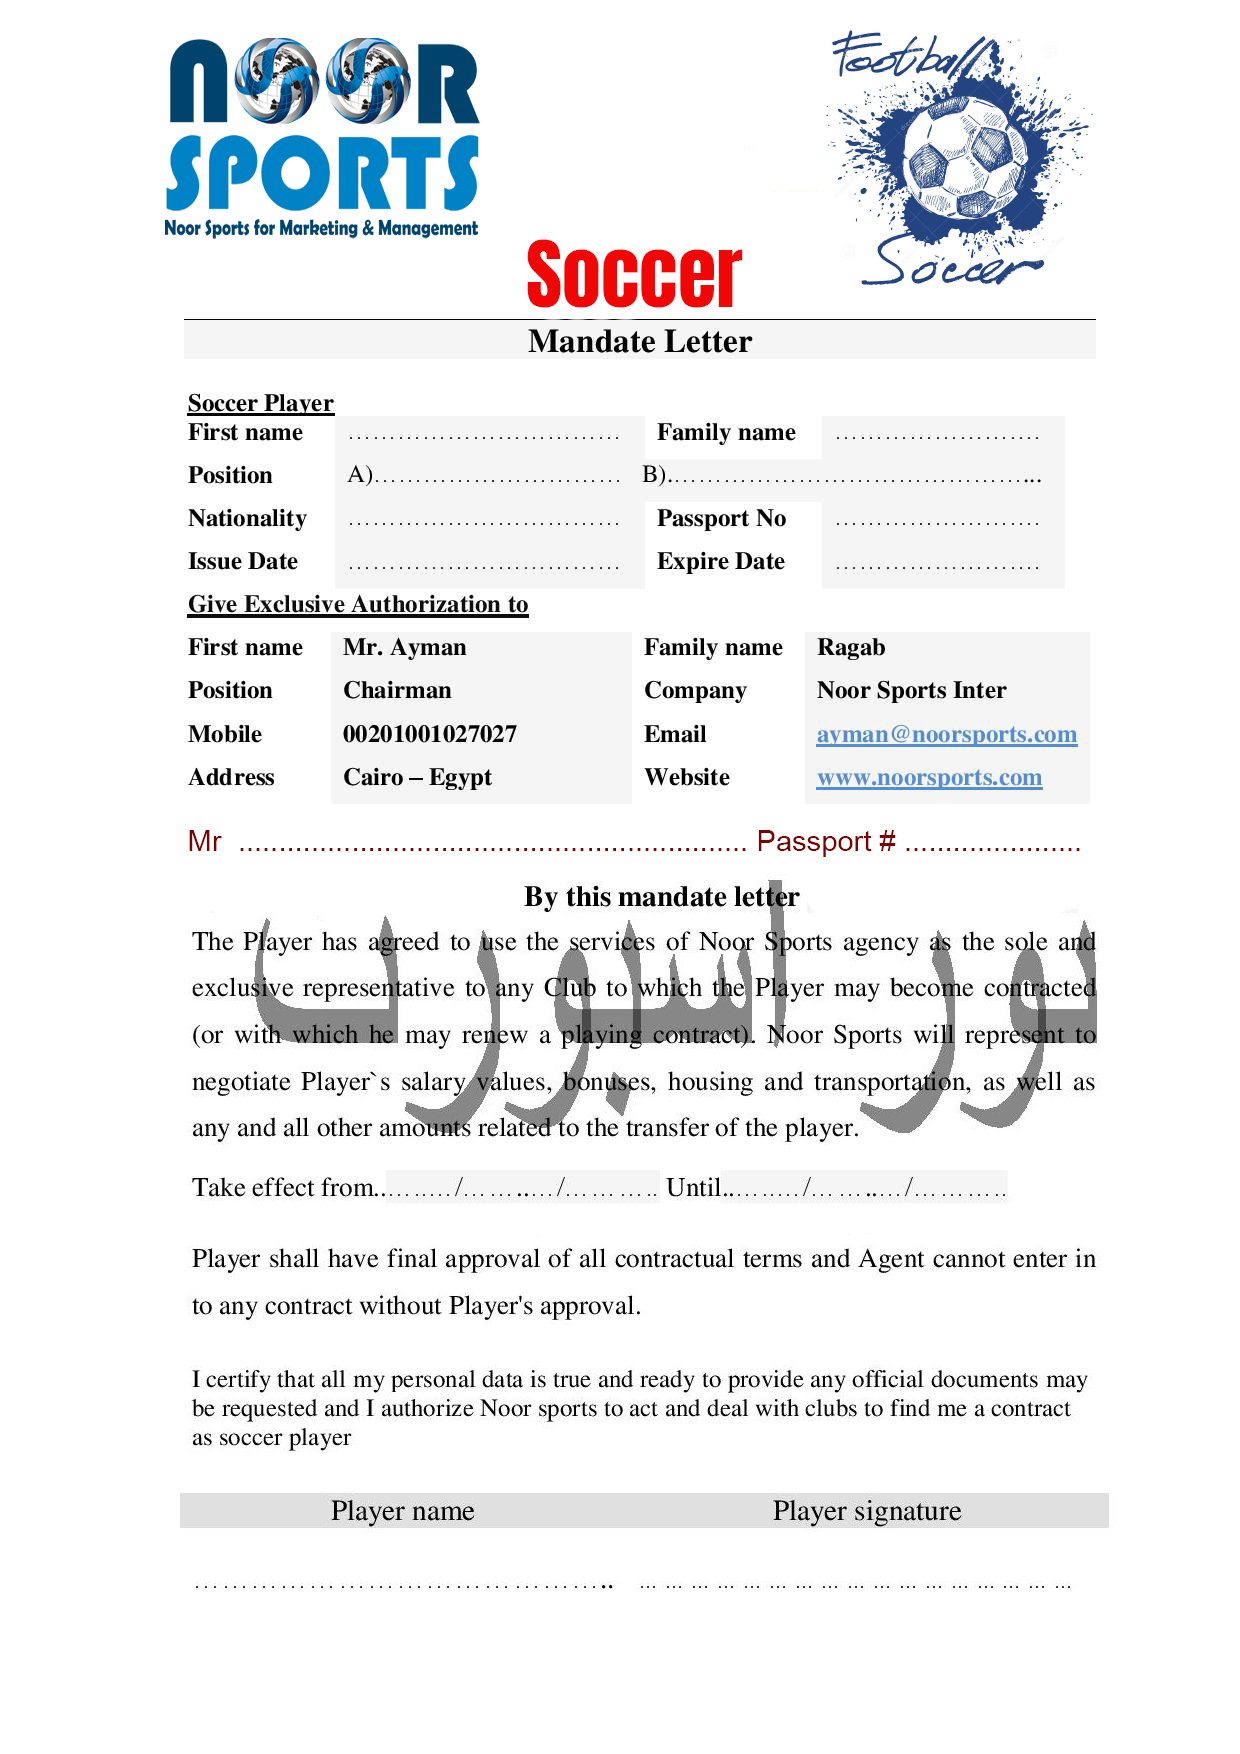 Soccer Player Mandate Letter  Noor Sports Agency Pertaining To Sole Mandate Agreement Template